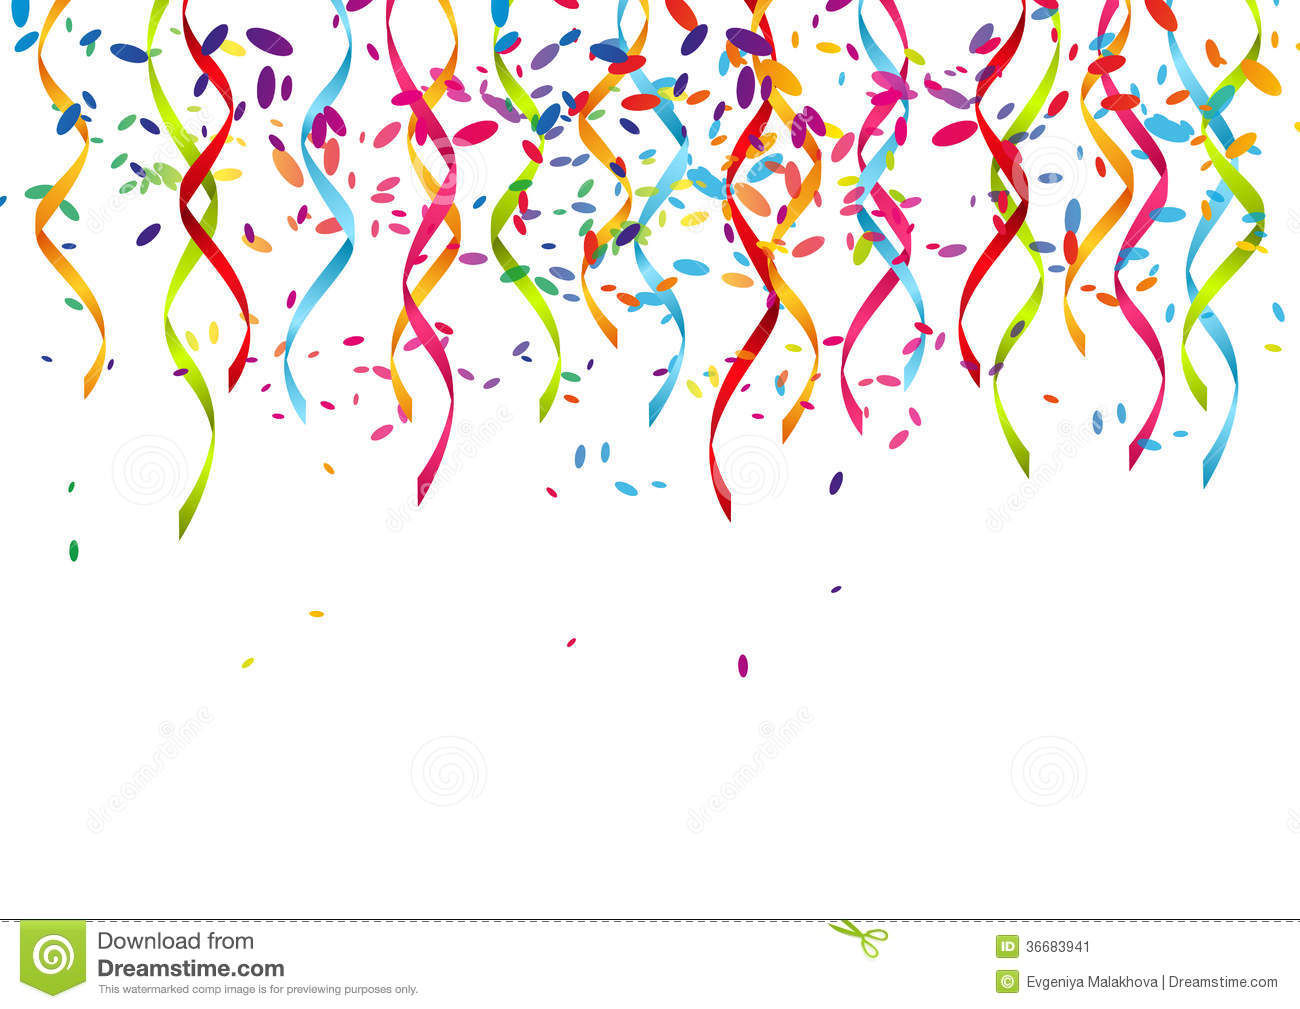 Party ribbons clipart vector free Royalty-Free Stock Photo - 1009*1300 - Free Clipart Download ... vector free